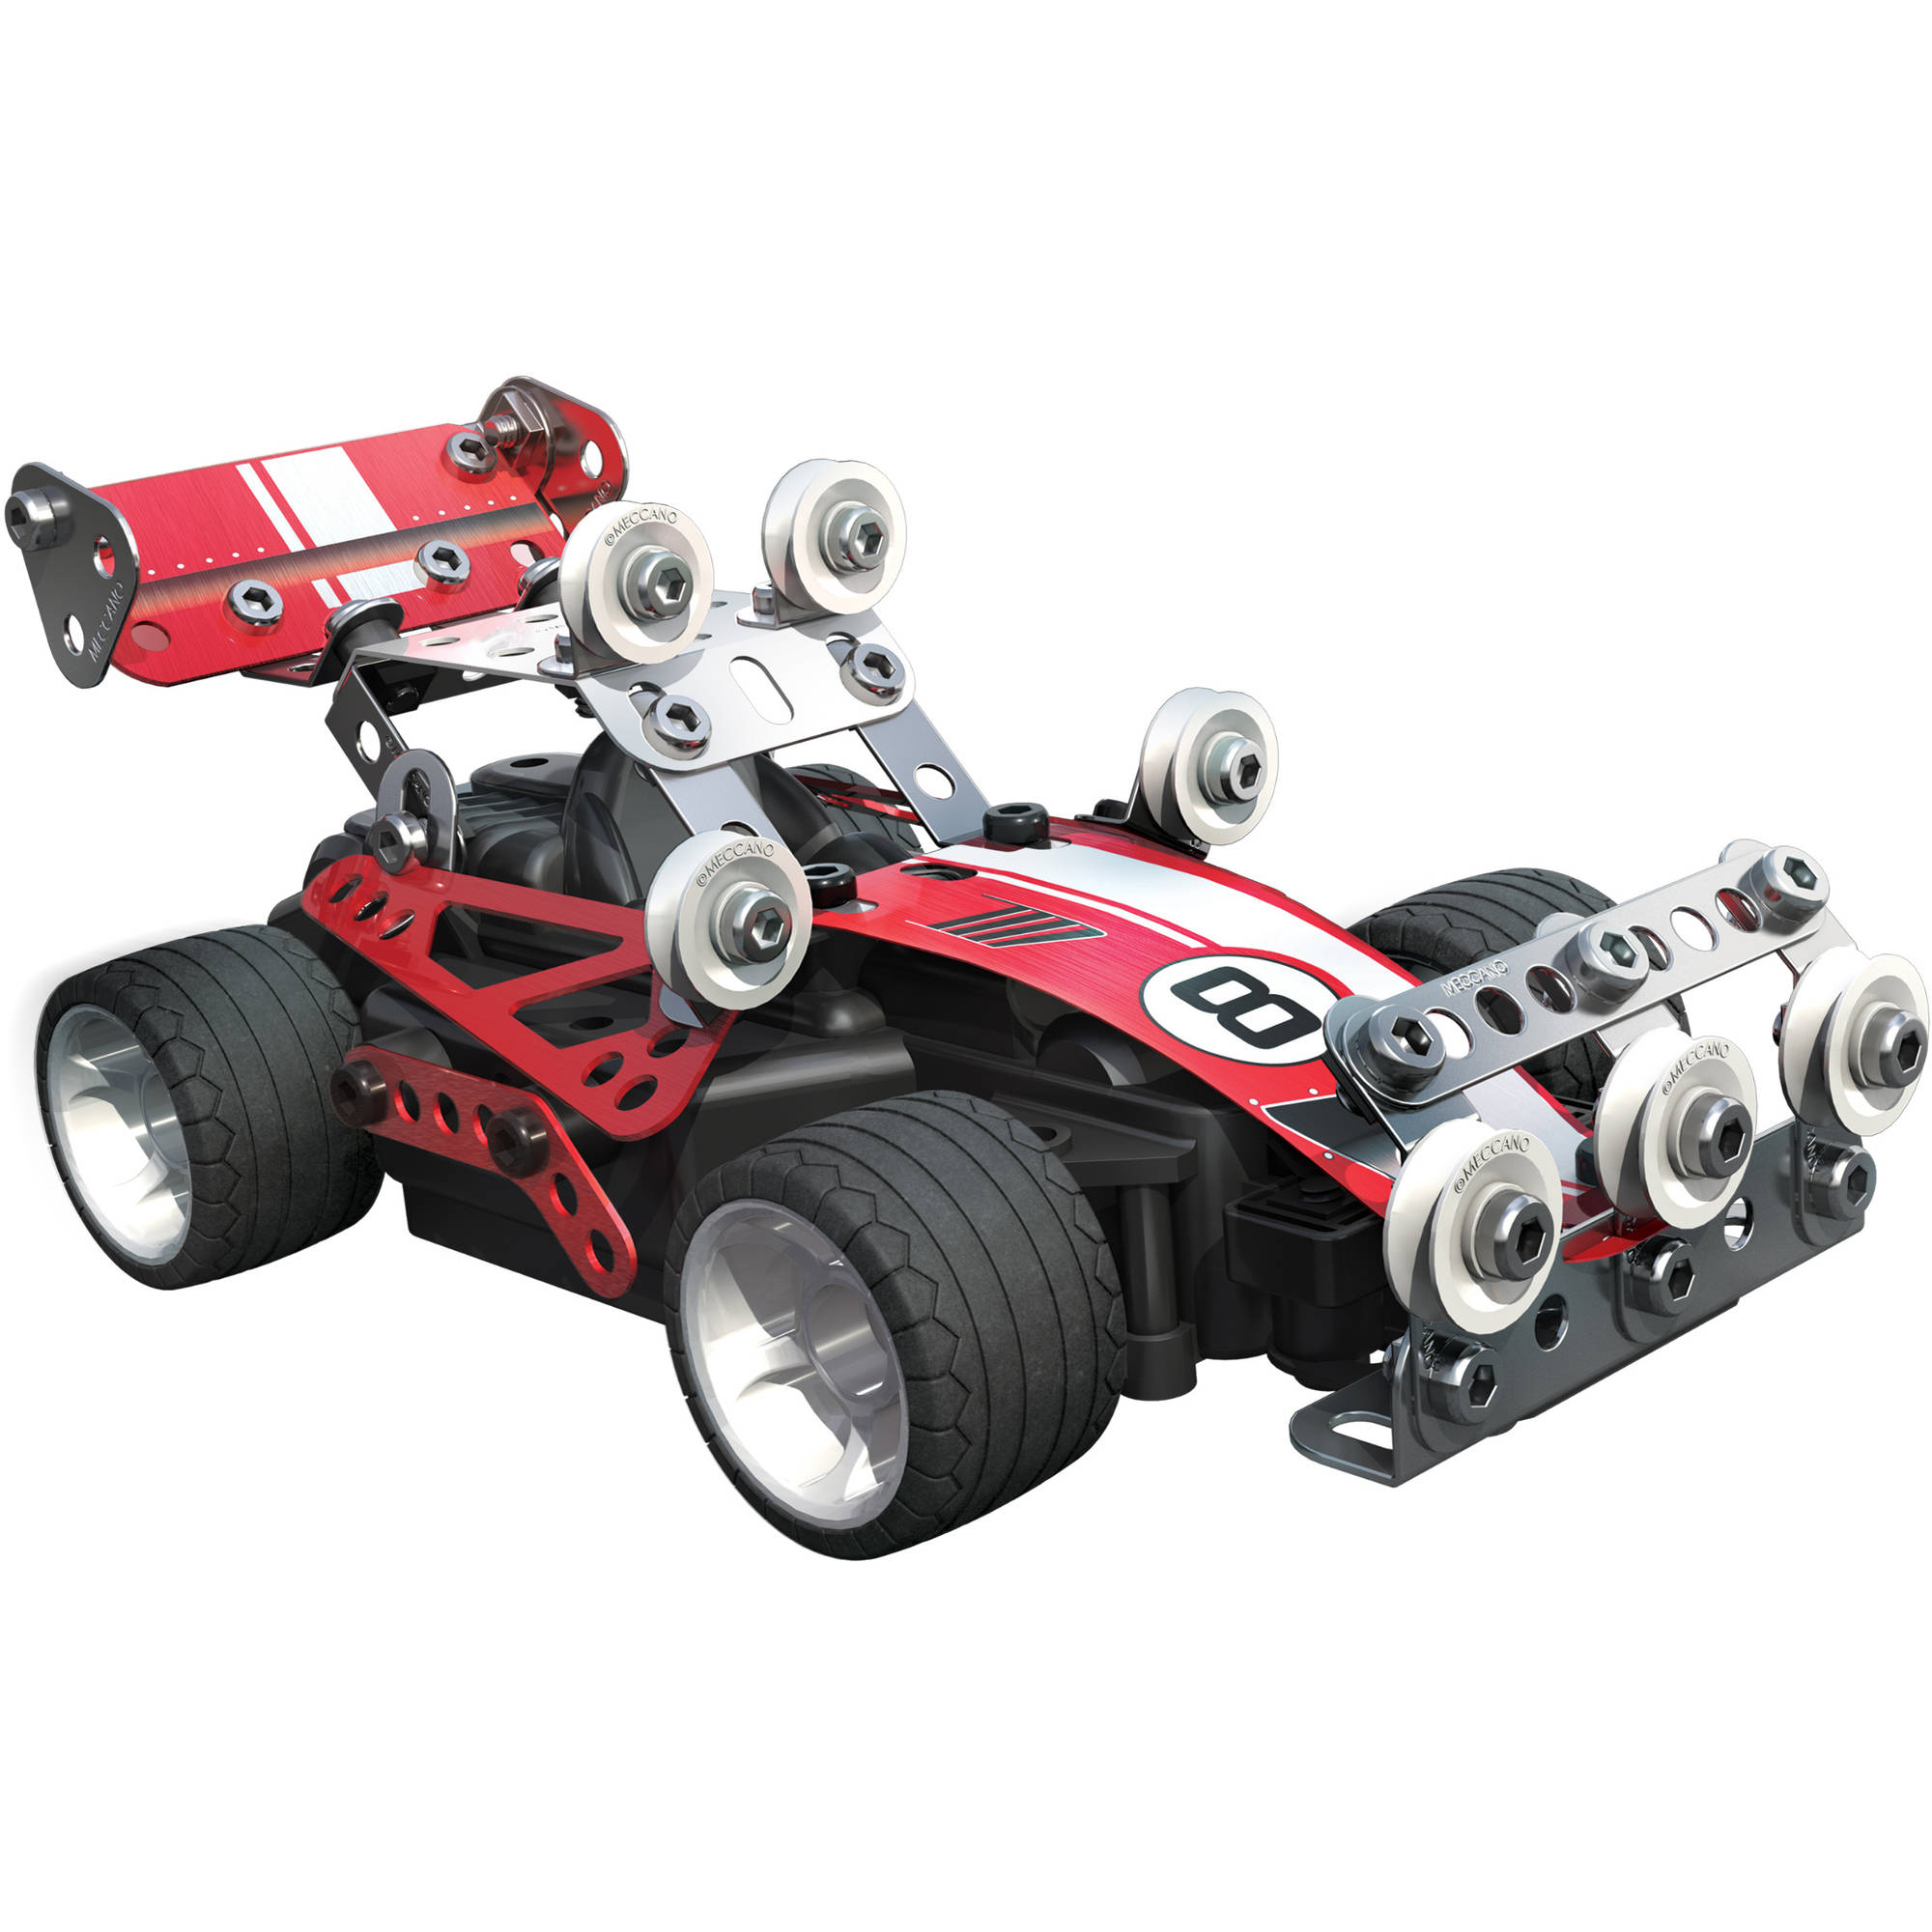 Meccano Erector Autocross Rc Model Set Toys Building Sets